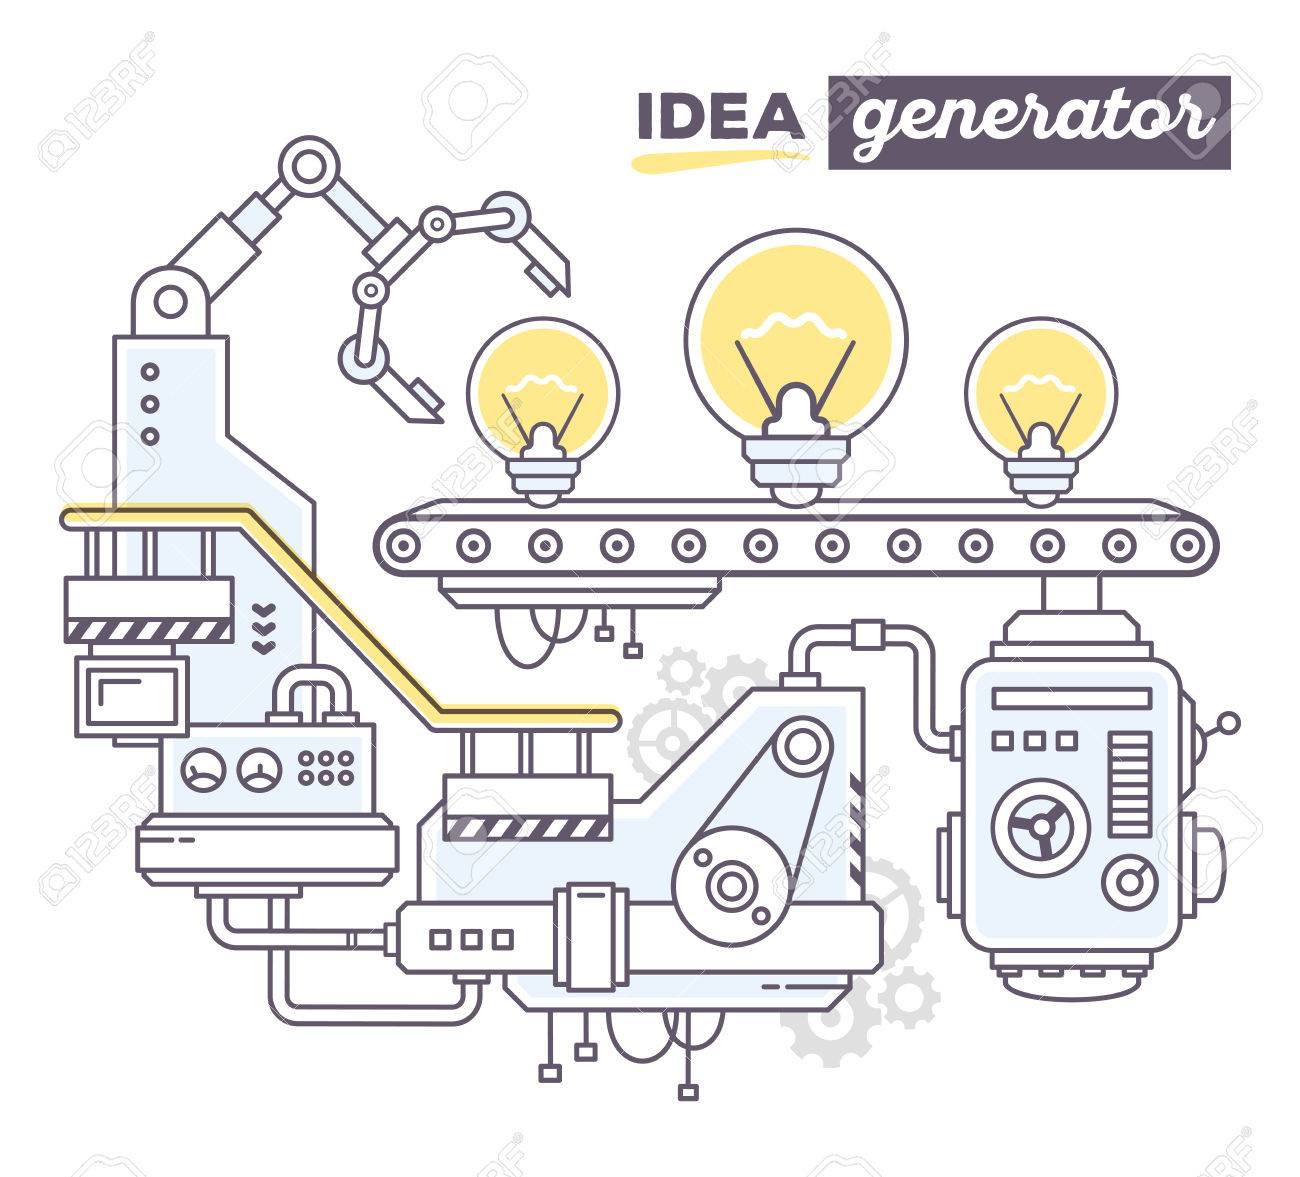 Vector Illustration Of Creative Professional Mechanism To Produce Light Bulb Schematic On The Conveyor Belt With Text Idea Generator White Background